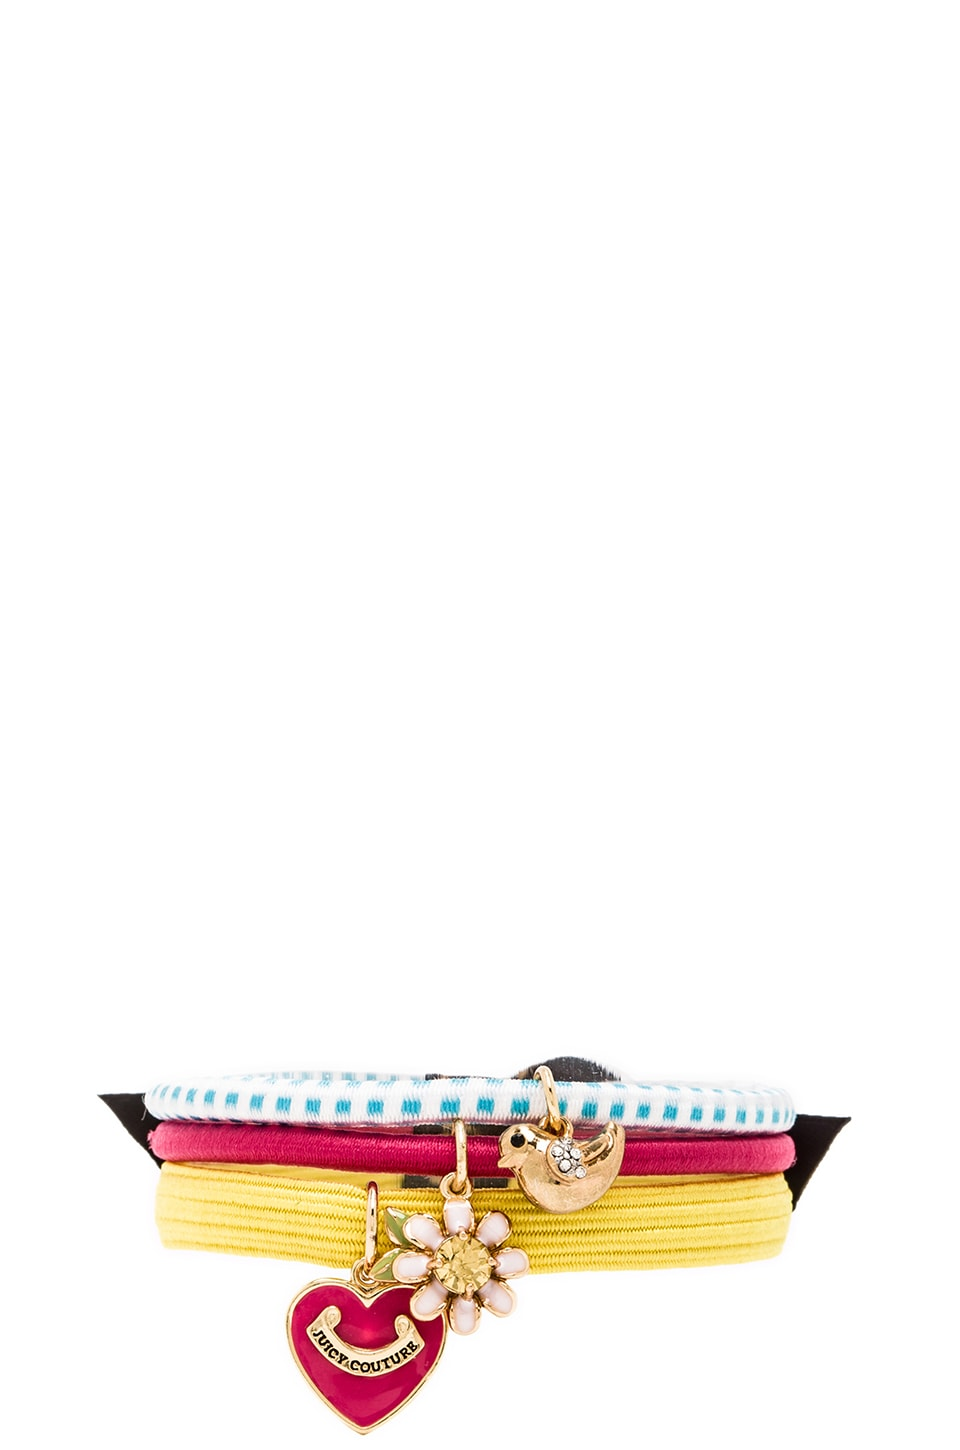 Juicy Couture Set of 3 Hair Elastics in Yellow